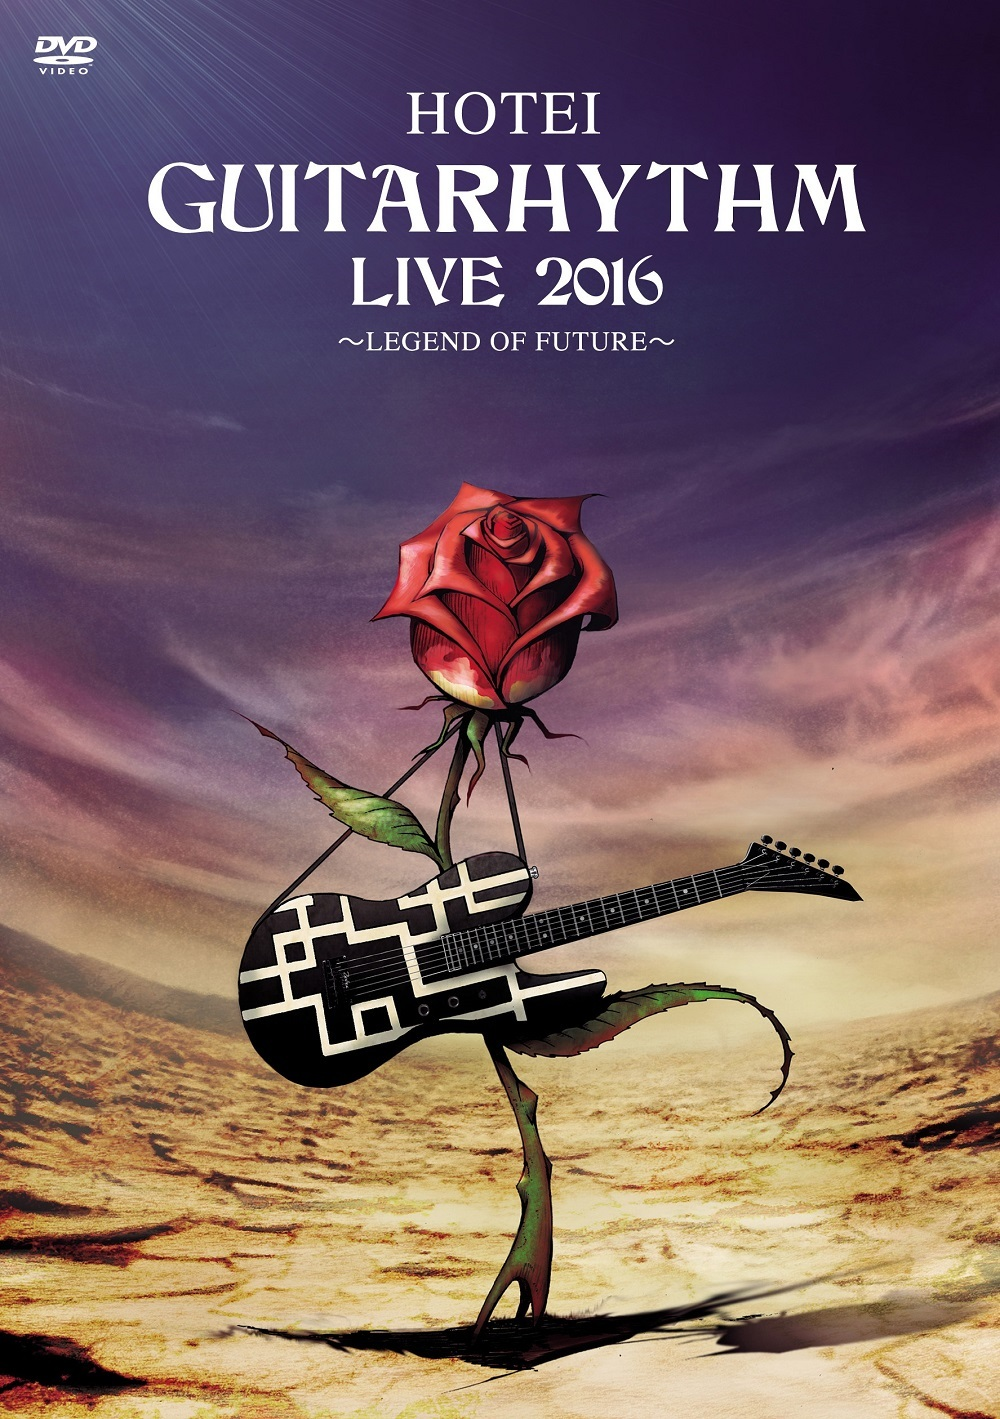 布袋寅泰『GUITARHYTHM LIVE2016』